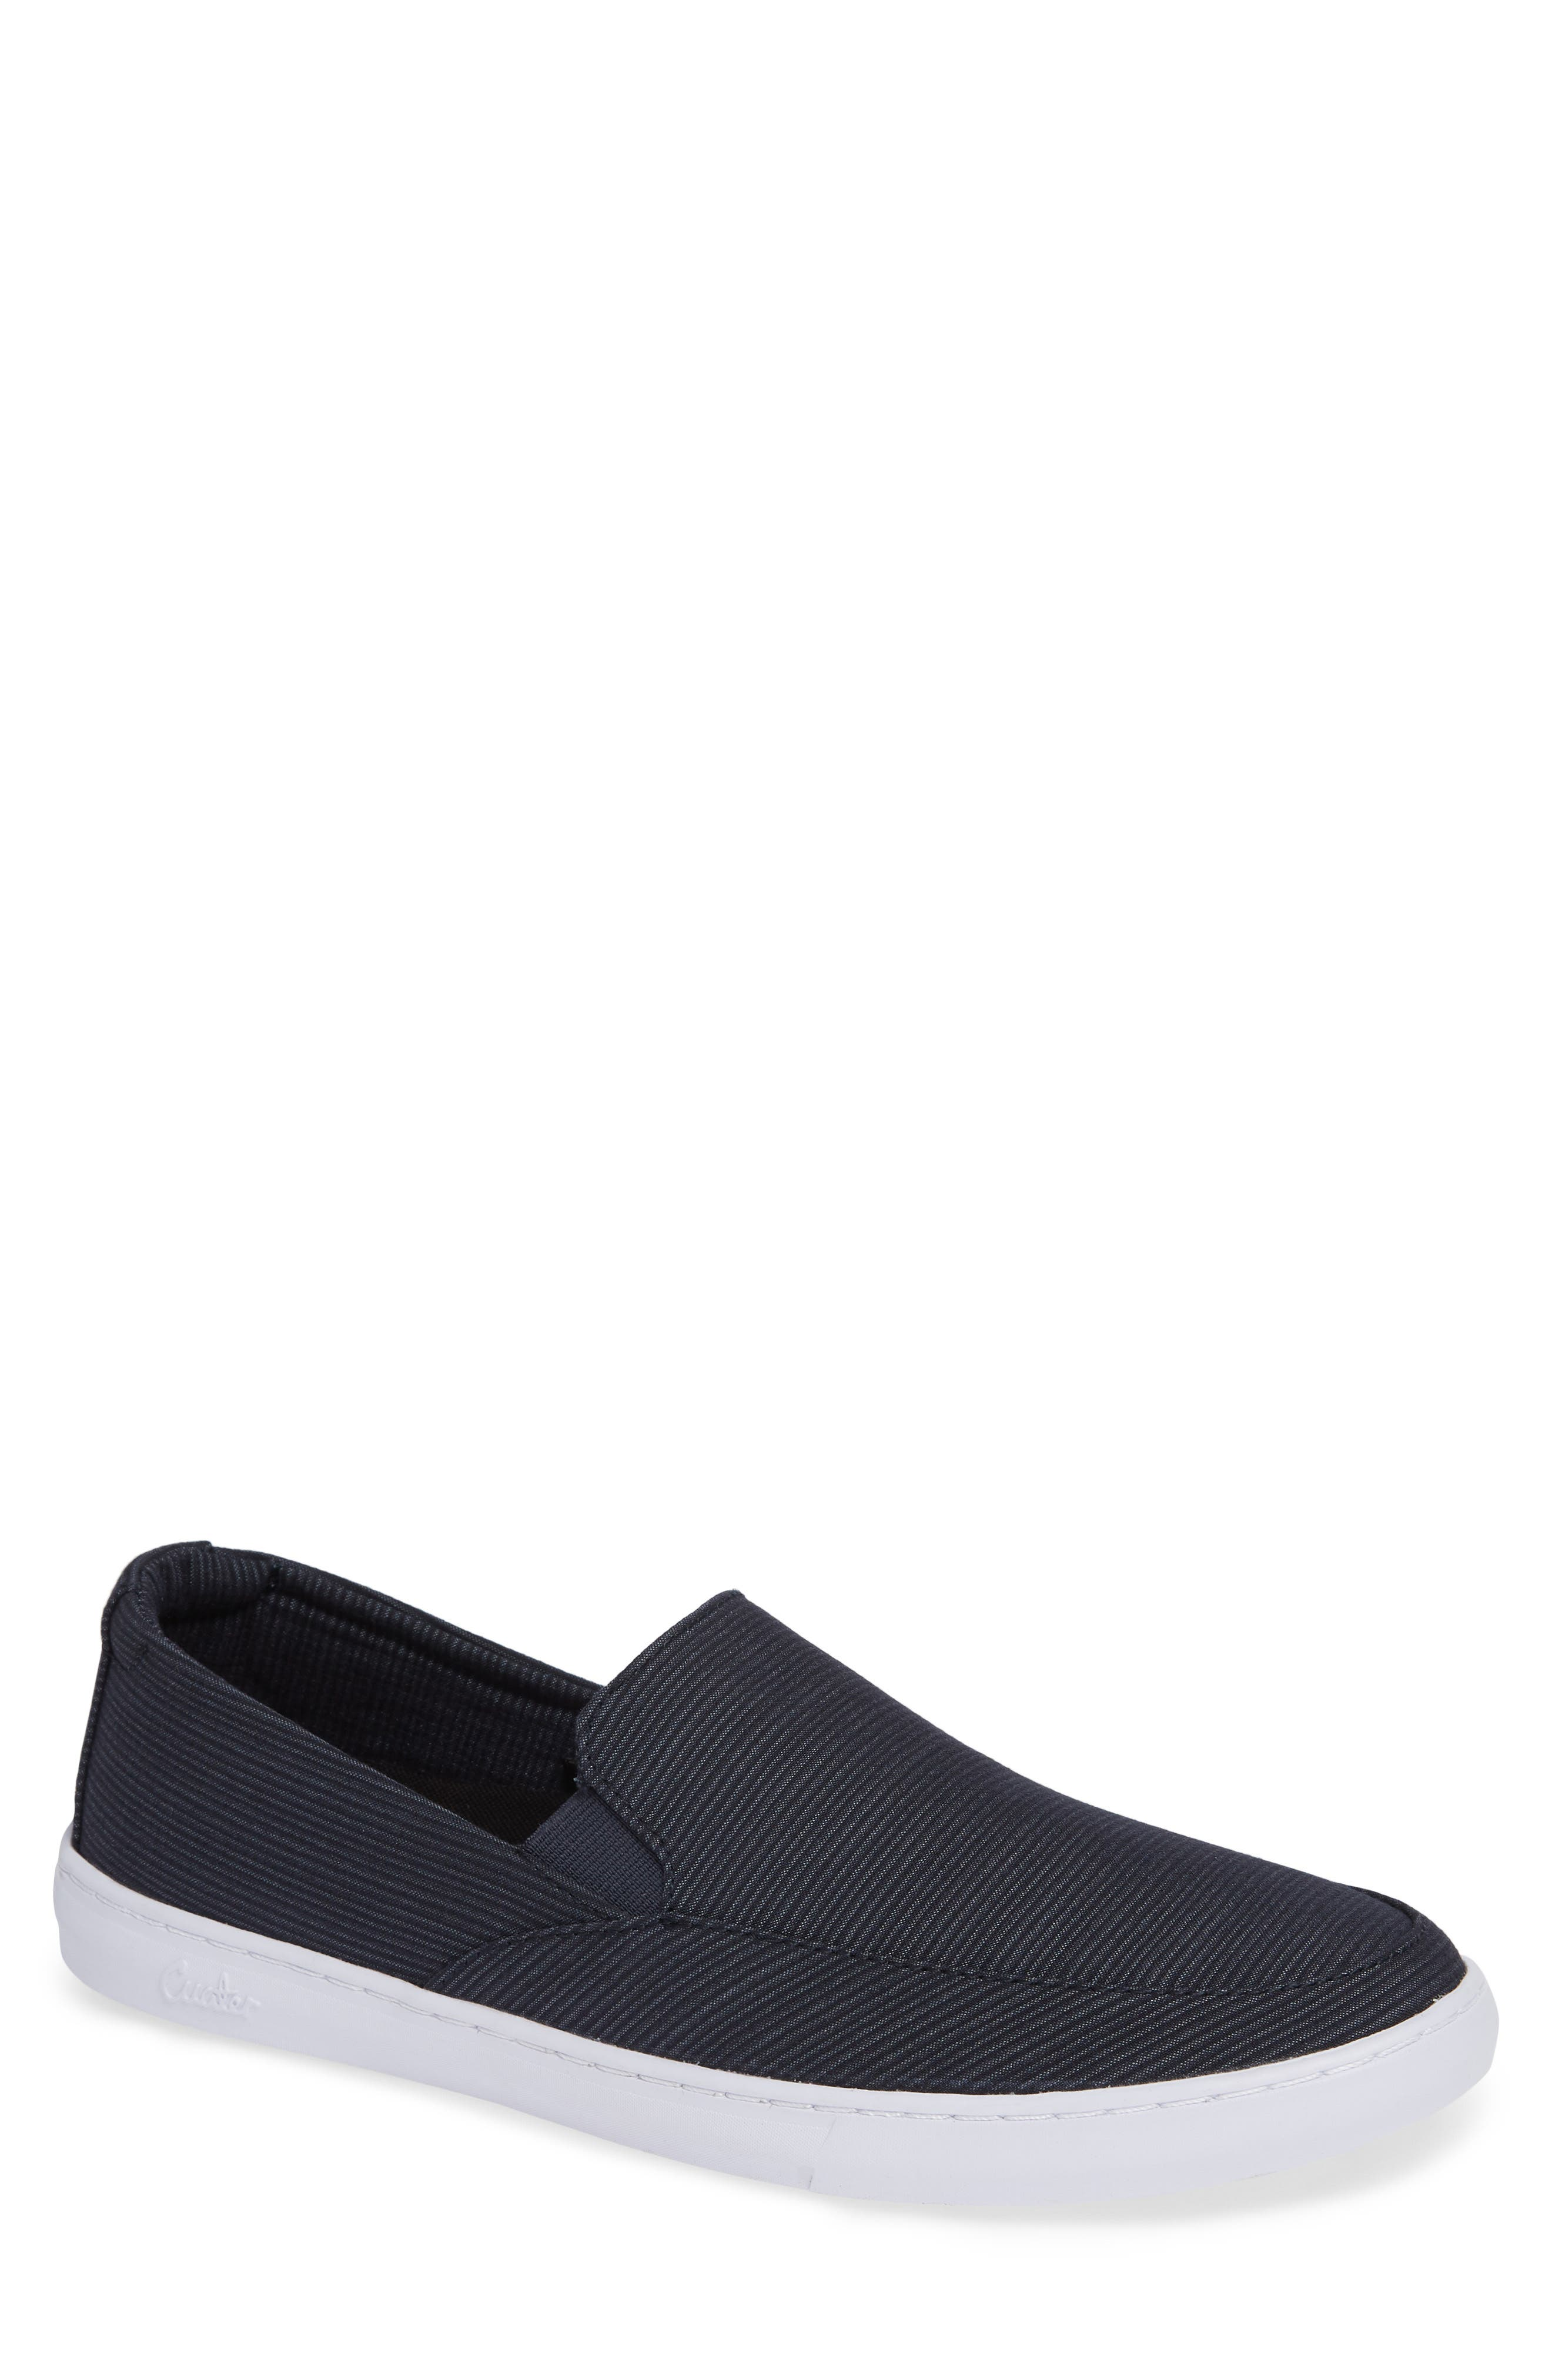 Cuater by Travis Mathew  Tracers Slip-On Sneaker,                             Main thumbnail 1, color,                             BLUE NIGHTS